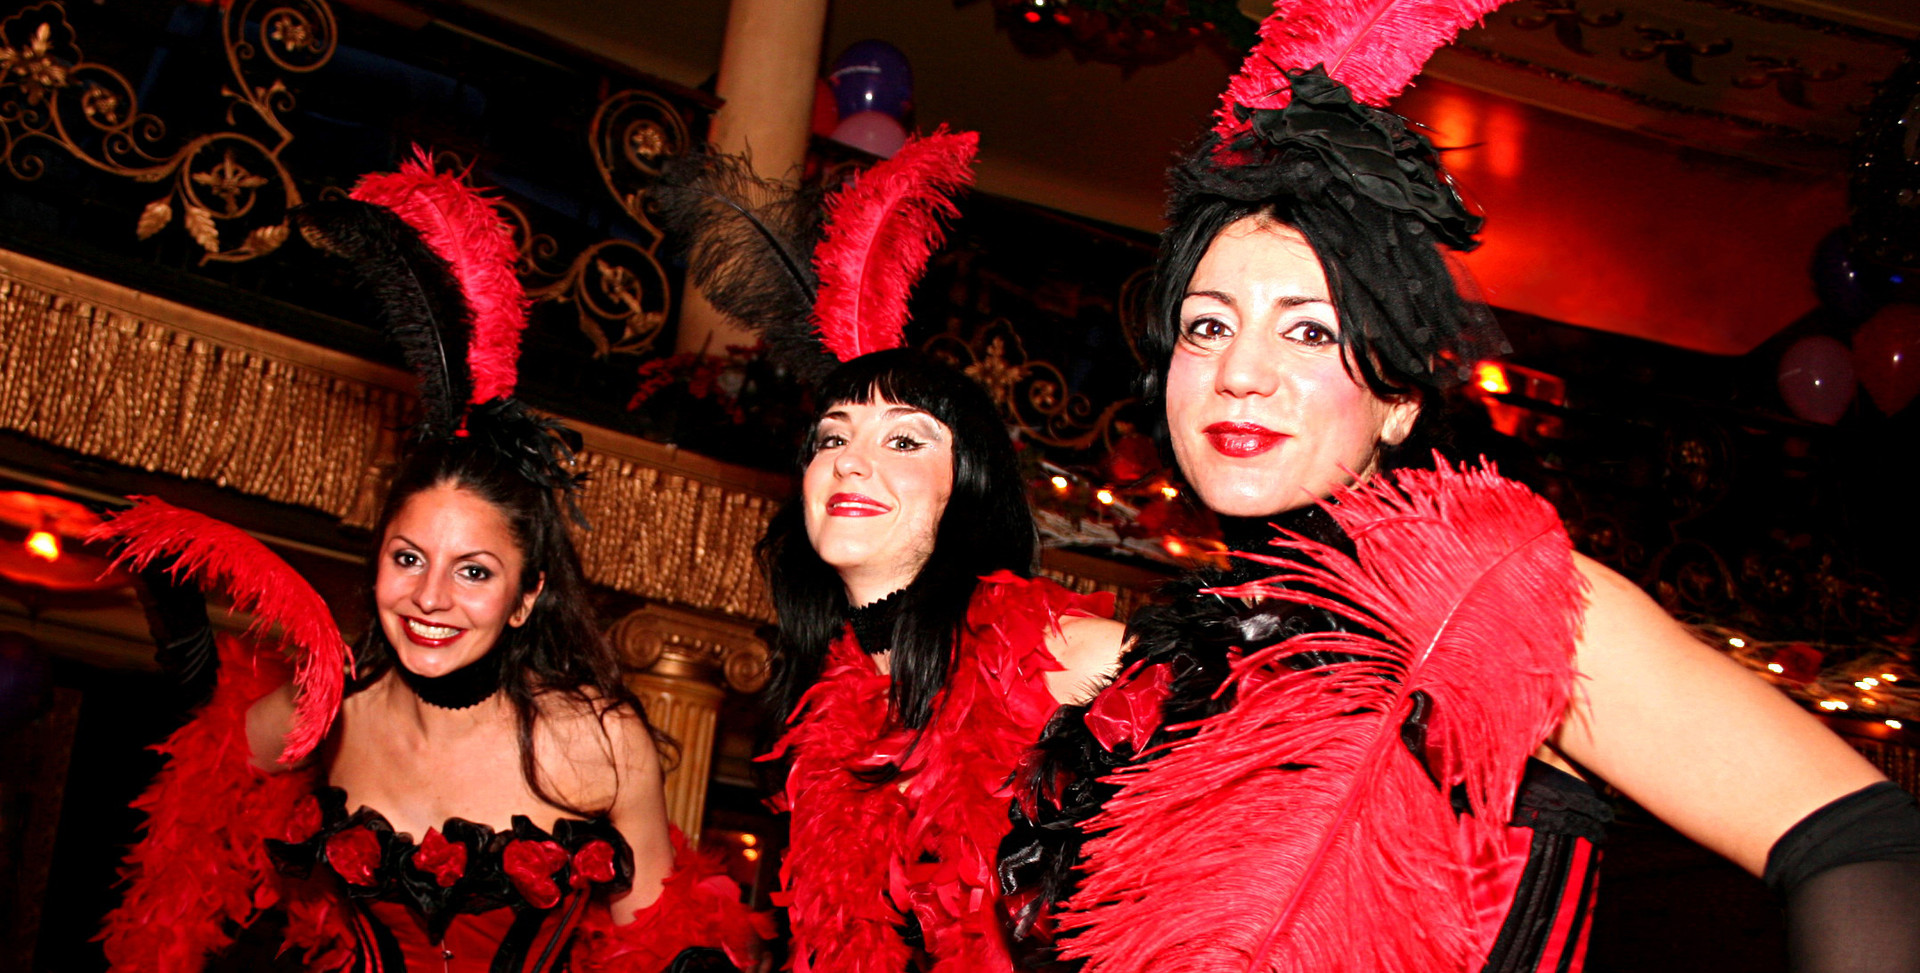 MOULIN ROUGE THEMED STILTWALKERS x 3